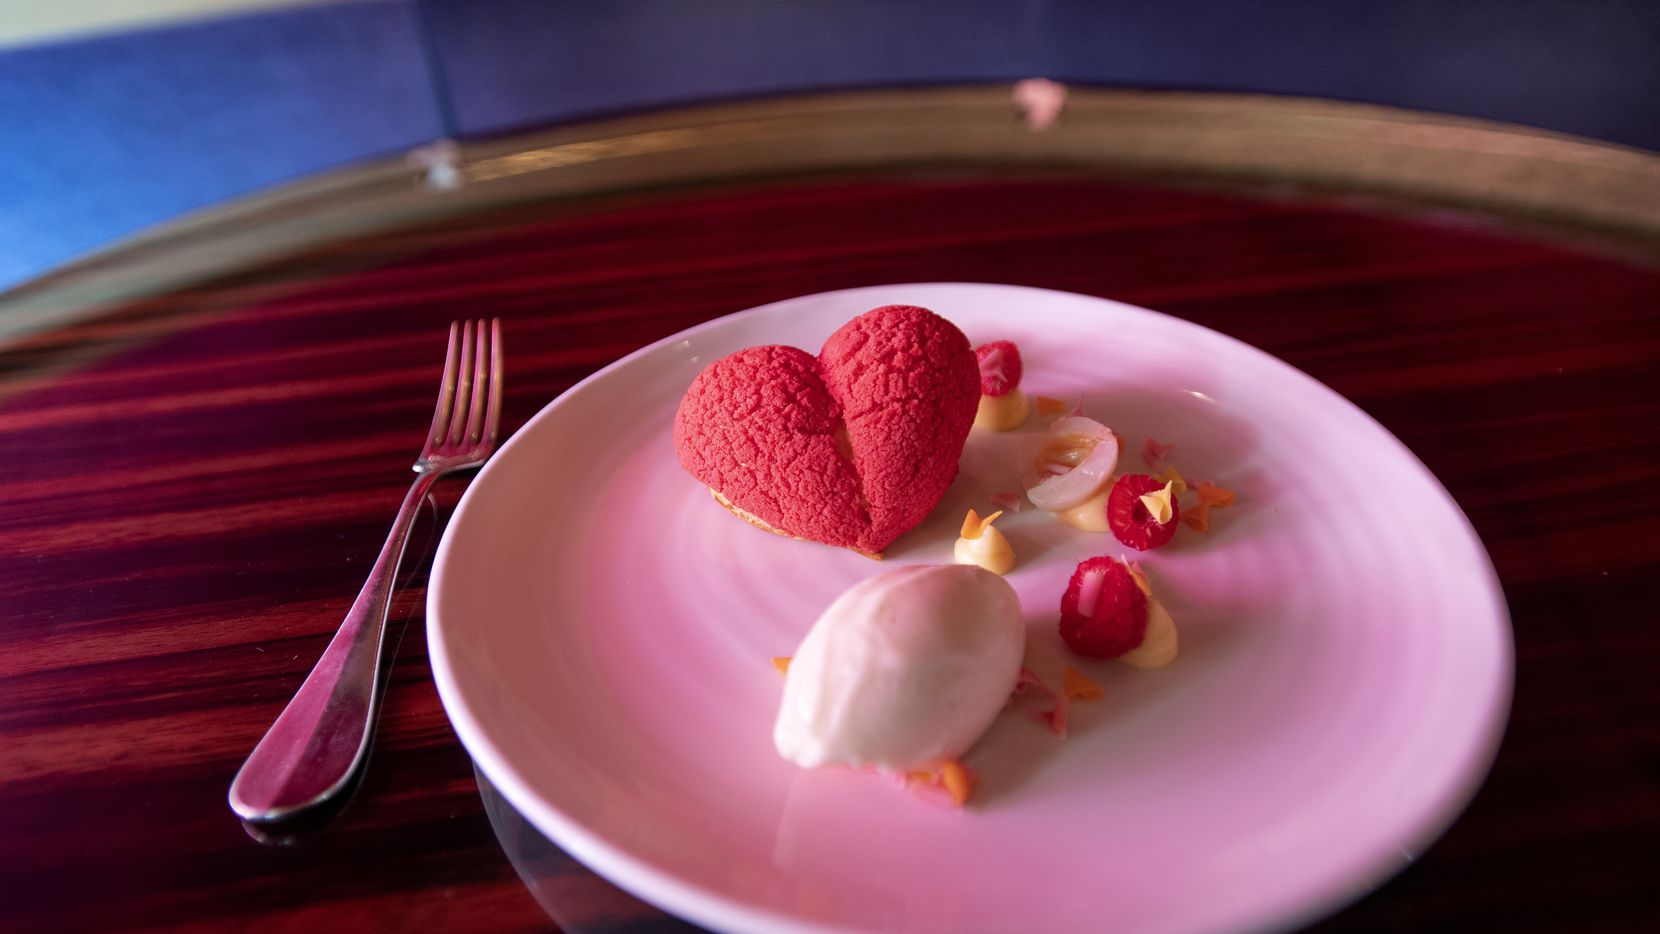 Coeur de Choux à la framboise is served at Bullion, Feb. 6, 2020, in downtown Dallas. The dessert dish, which will be served as part of the restaurant's four-course Valentine's Day dinner, includes chocolate raspberry crémeux, lychee and raspberry sorbet.